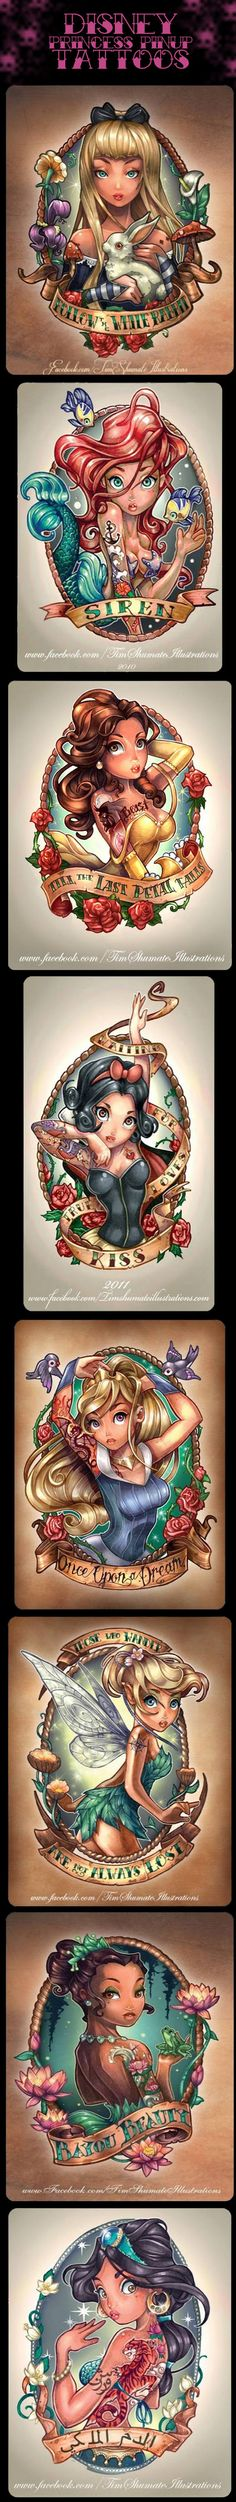 Only discovered this artist today through Pinterest!! Love his work; Tim Shumate